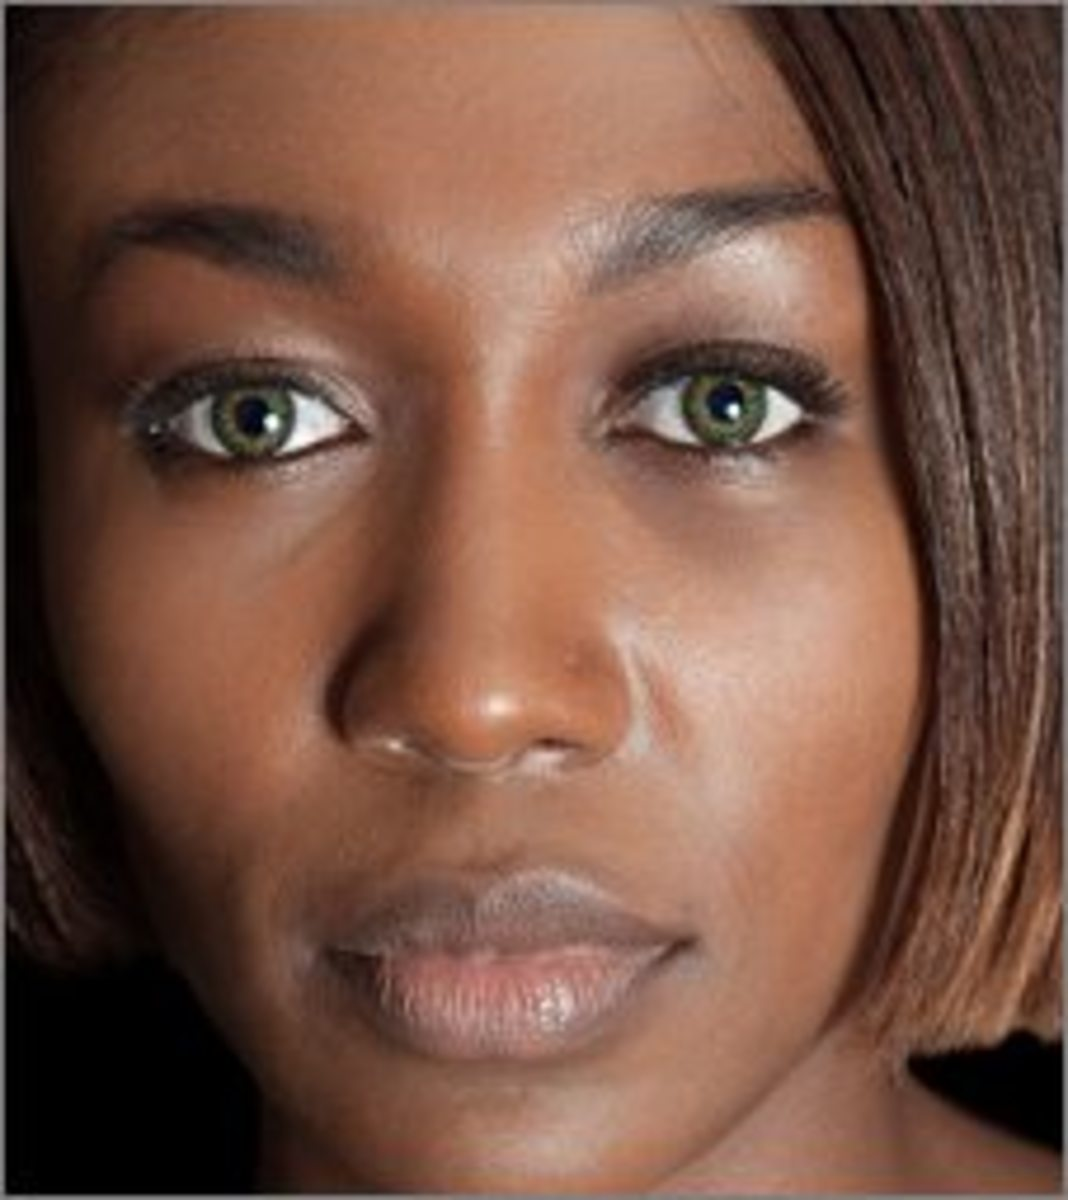 Green contacts look great on dark milk chocolate skin